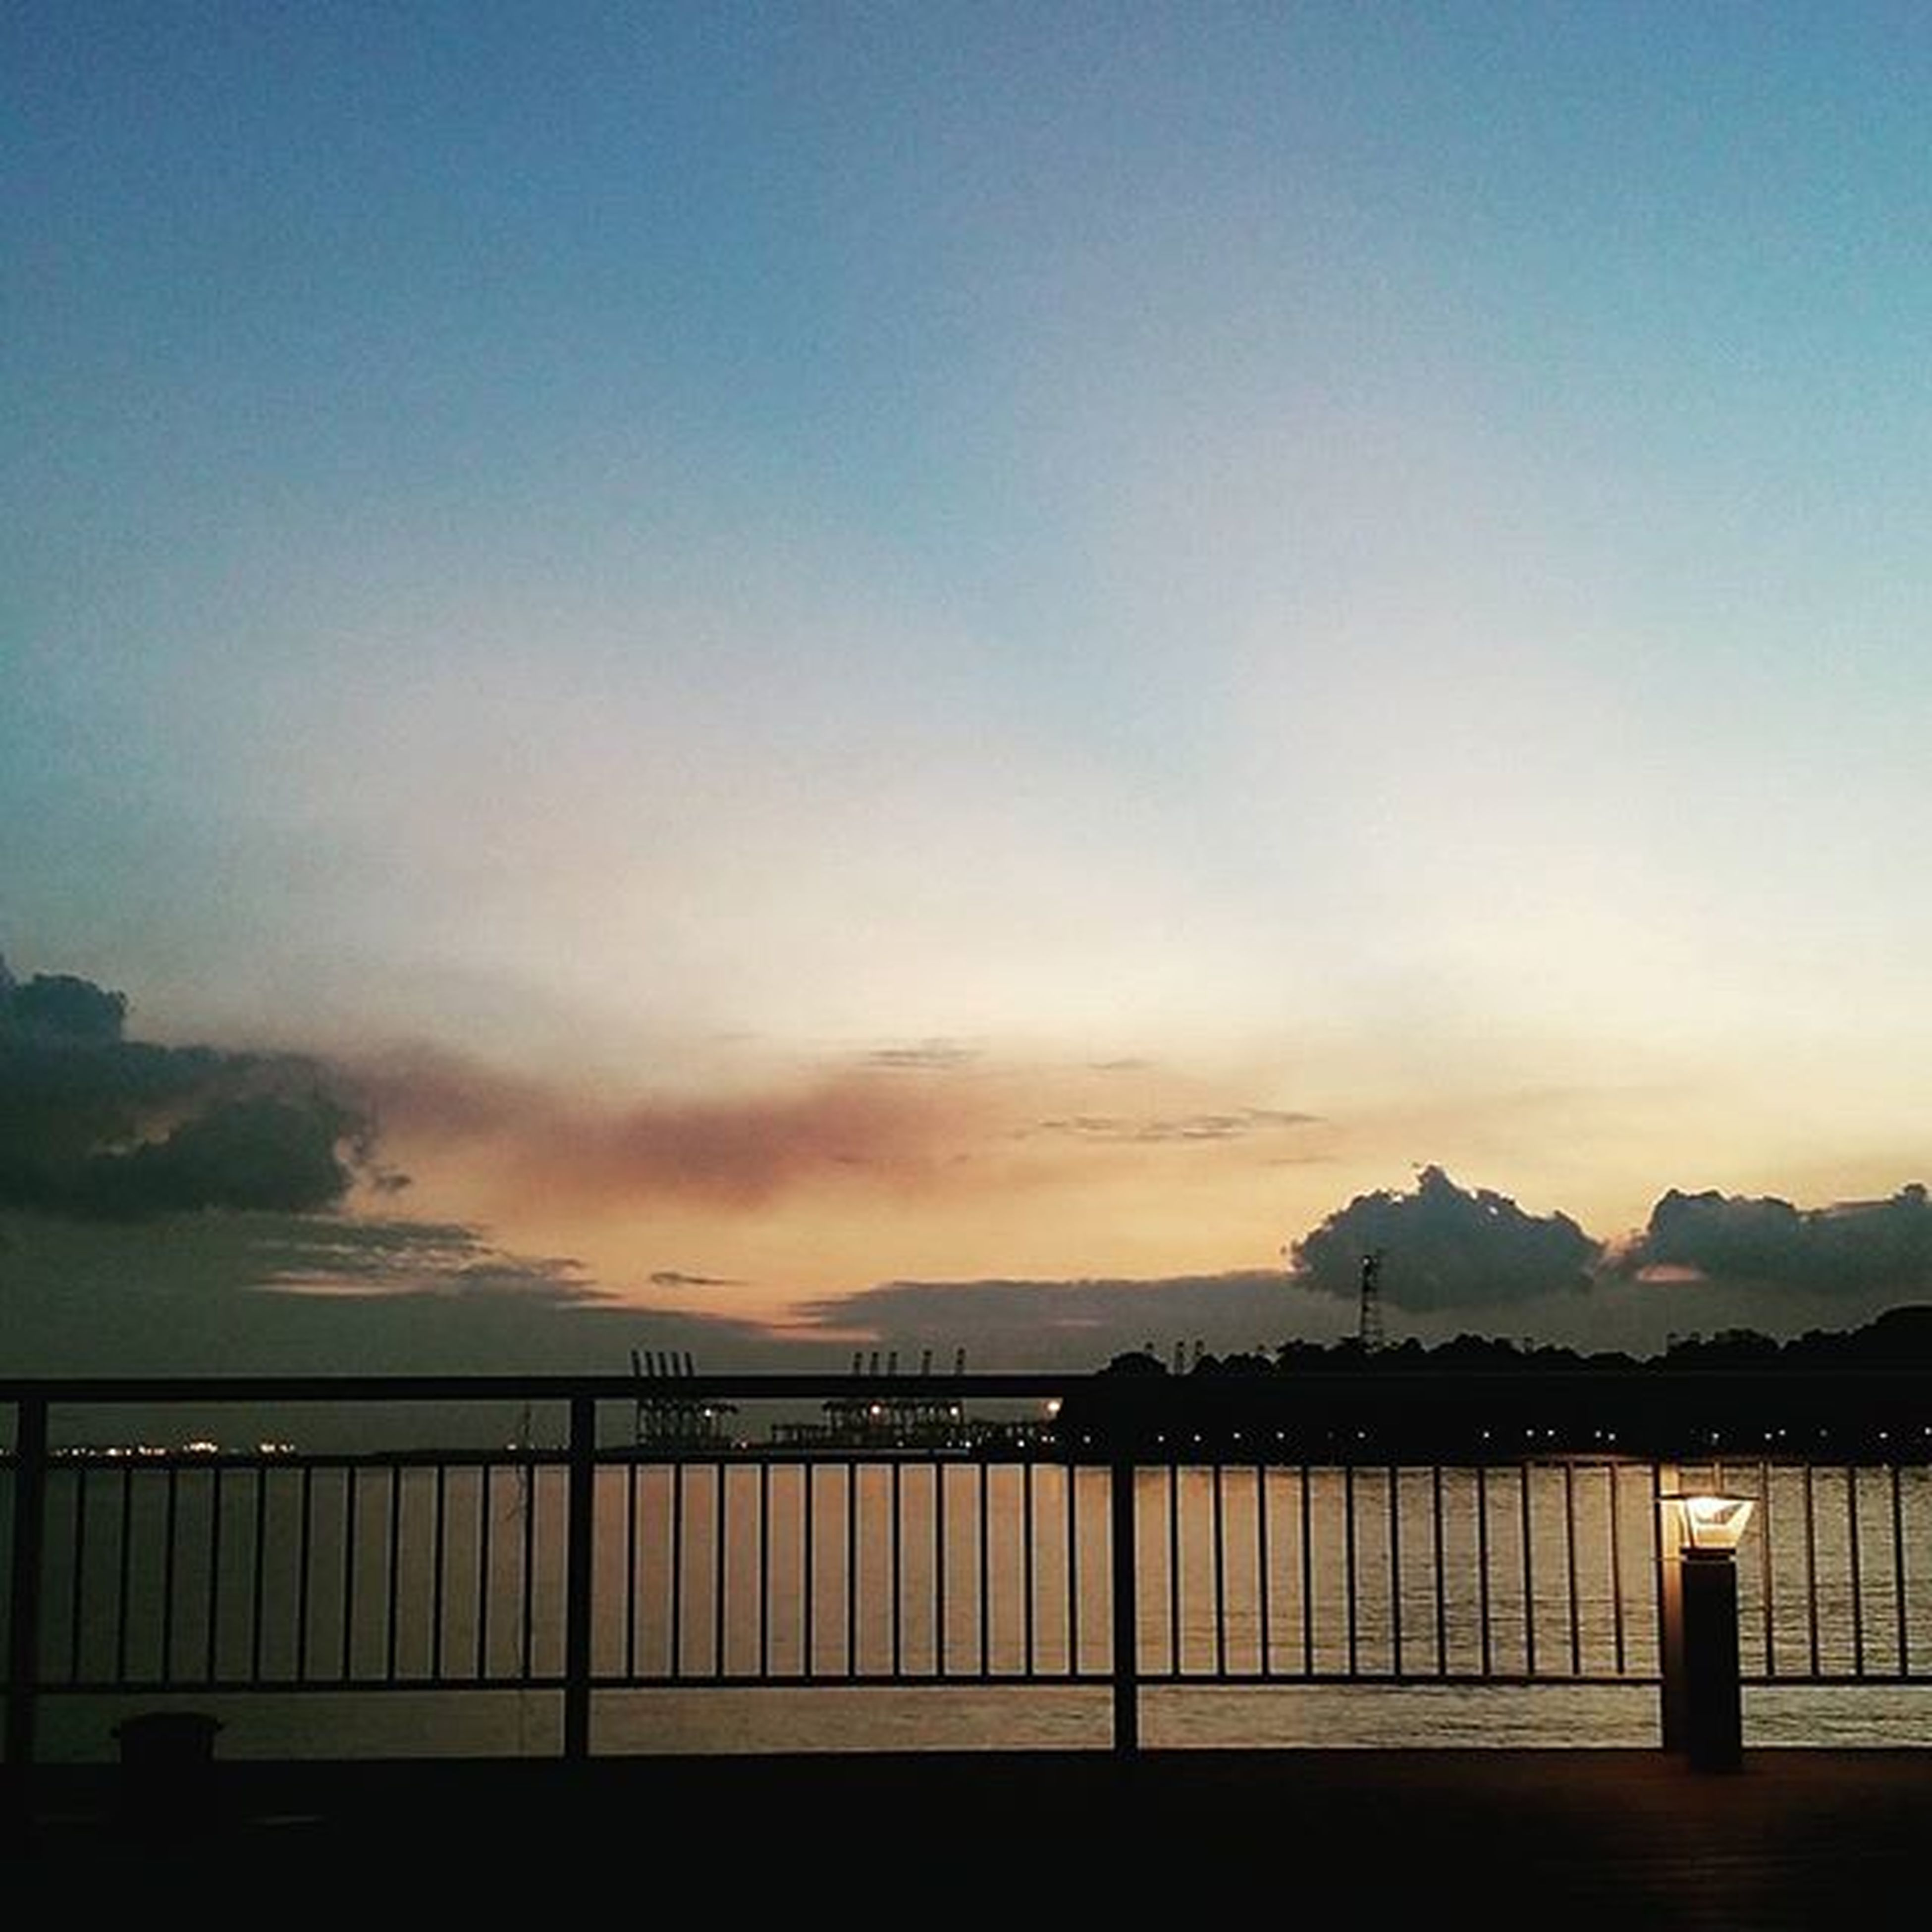 sunset, water, sea, railing, tranquility, tranquil scene, scenics, sky, silhouette, beauty in nature, mountain, dusk, nature, copy space, idyllic, pier, orange color, beach, outdoors, built structure